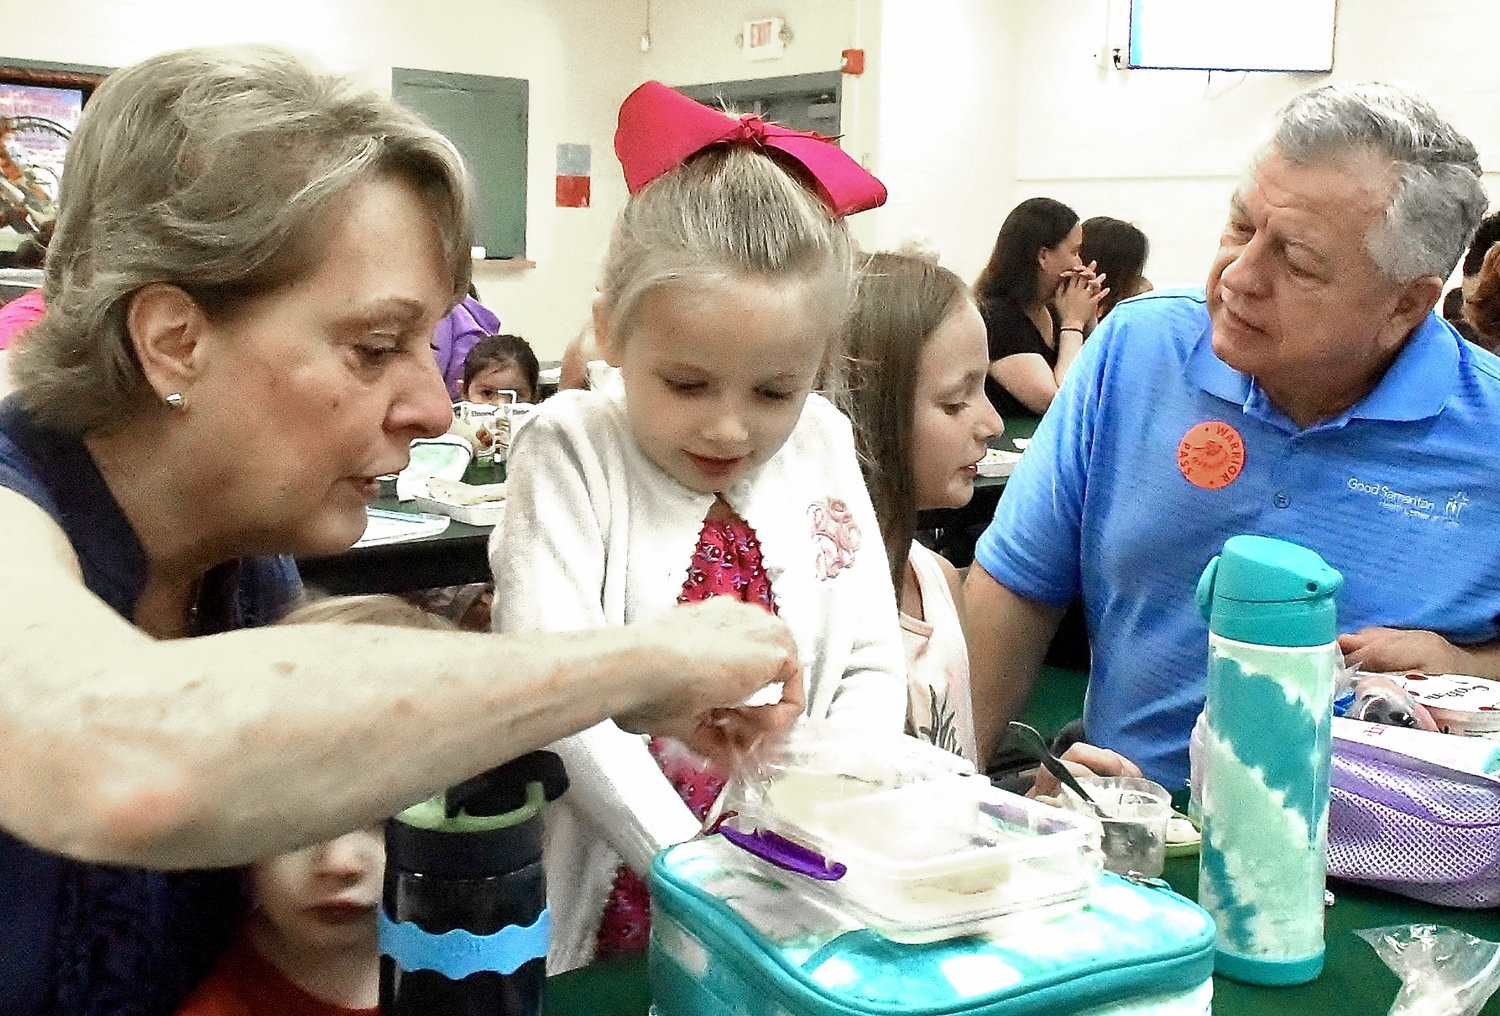 In recognition of today being Grandparents Day, Marjorie and Jerry Cox of Woodstock joined their granddaughters, Ansley Blanton, left center, a kindergartner, and Arlington Blanton, a third-grader, for lunch Friday at White Elementary School.